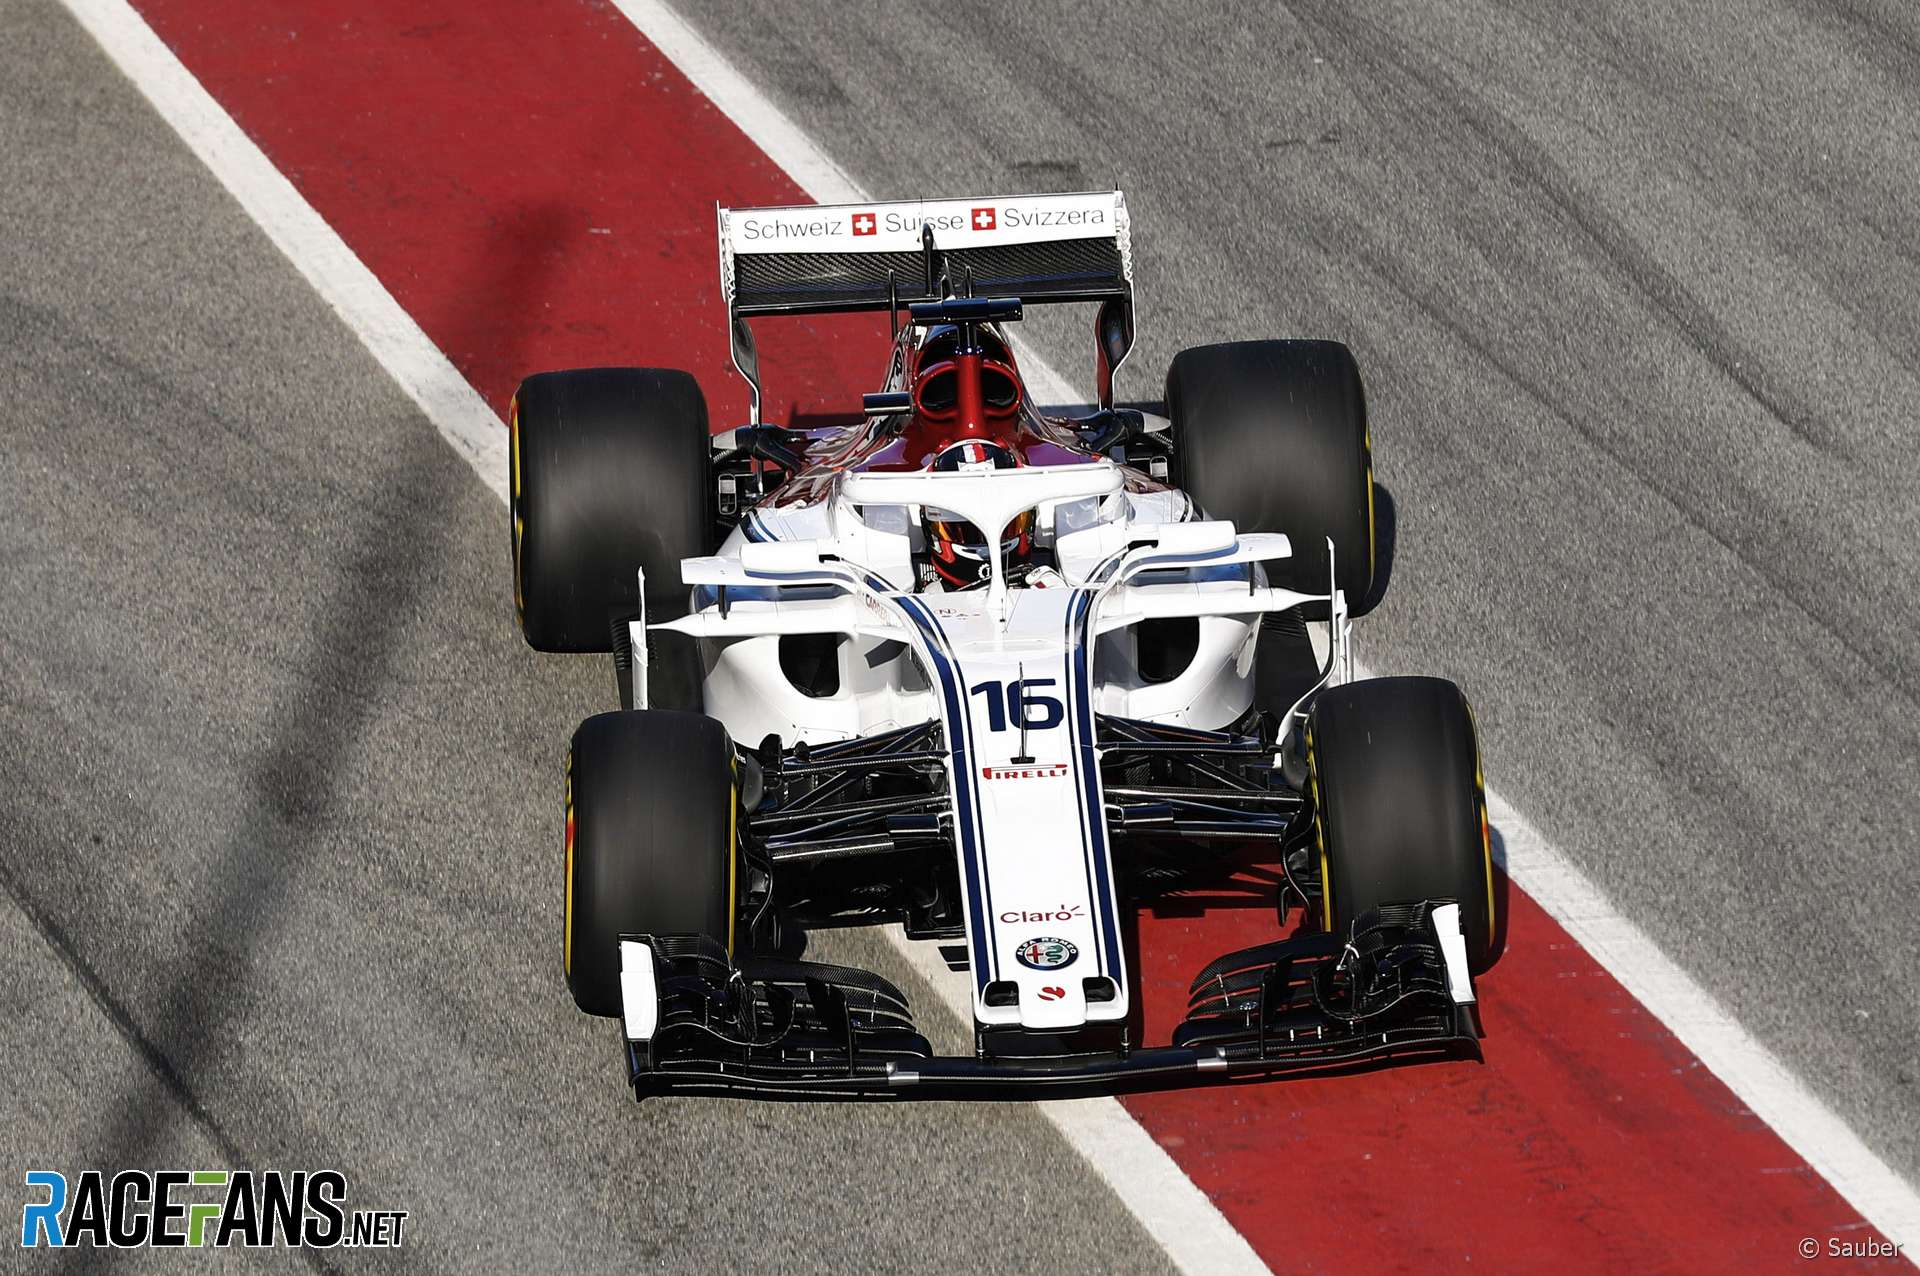 sauber alfa romeo formula 1 with Sauber C37 Technical Analysis on Haas F1 Team 2018 moreover 2018 F1 Liveries Could Make Halo Look in addition Breaking Kimi Raikkonen To Stop Driving For Ferrari Moves To Sauber 128491 also Sauber C37 Technical Analysis as well Make 2017 Formula 1 Livery Template.